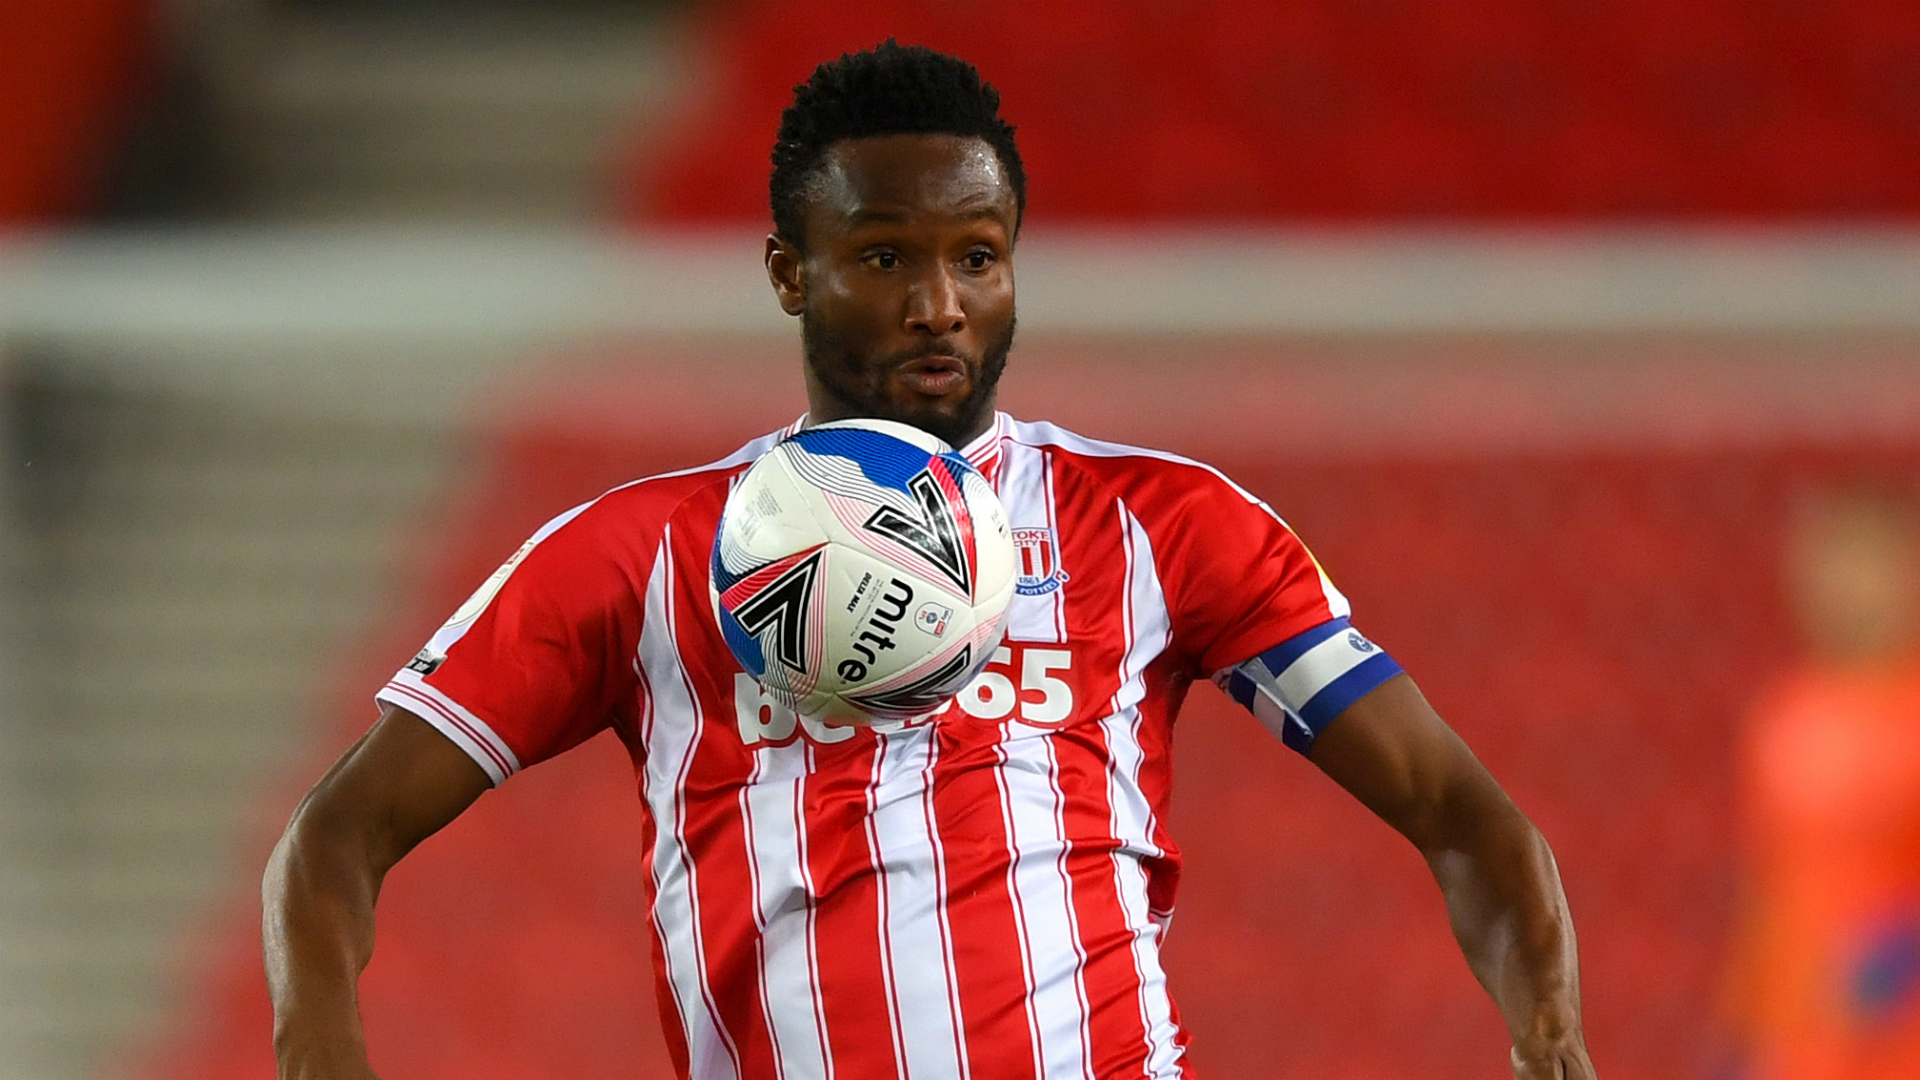 Stoke City sweating on Mikel's fitness ahead of Wycombe Wanderers trip